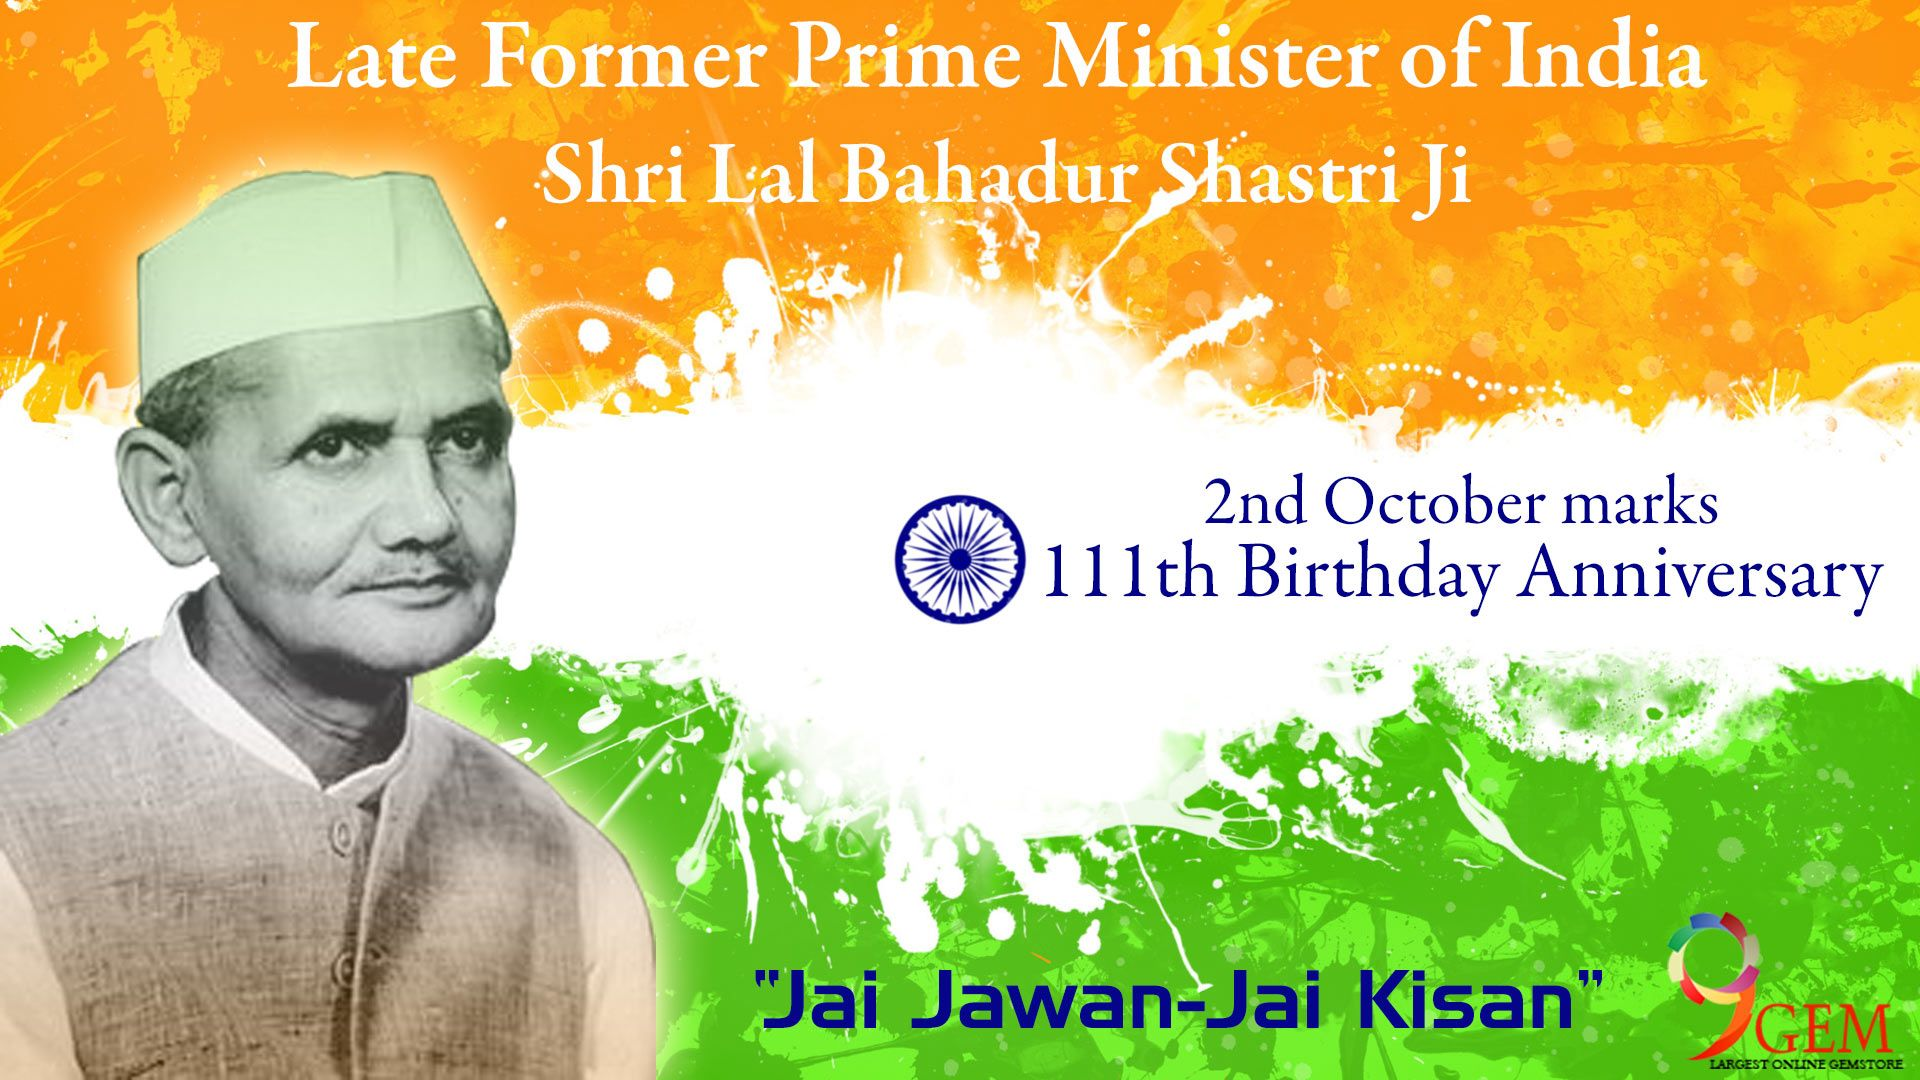 """""""Protect the freedom of India is my first preference """" Wishing you a very happy Lal Bahadur Shastri Jayanti from 9Gem.com"""